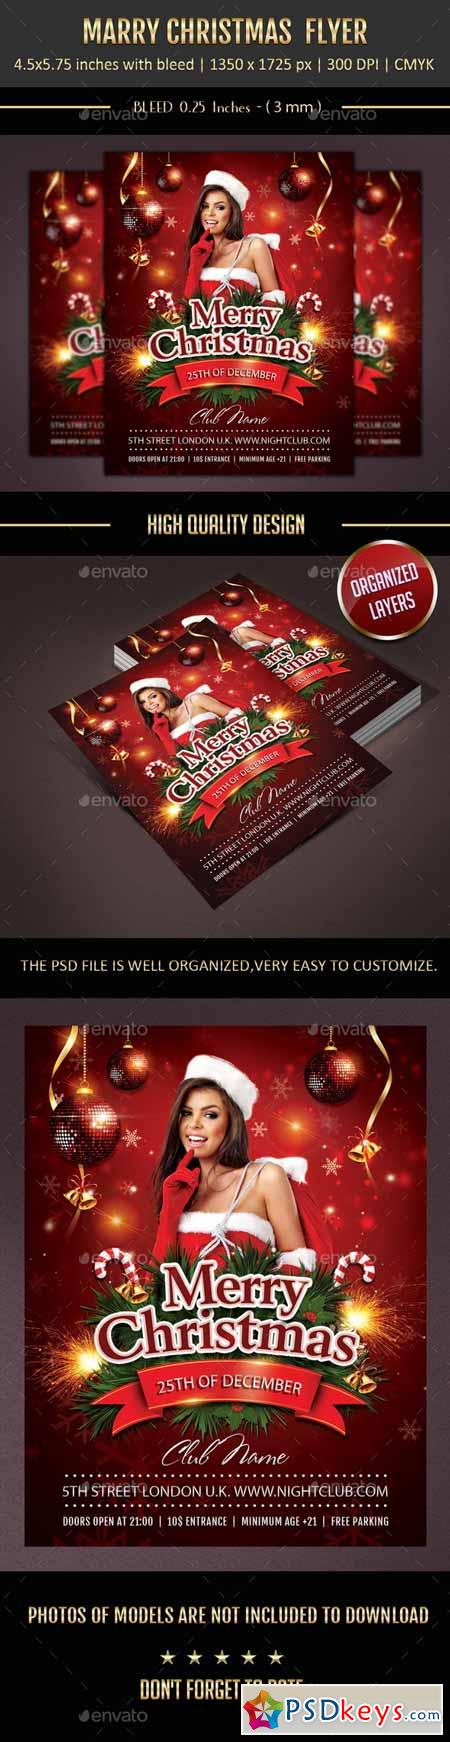 Merry Christmas Flyer 9648780